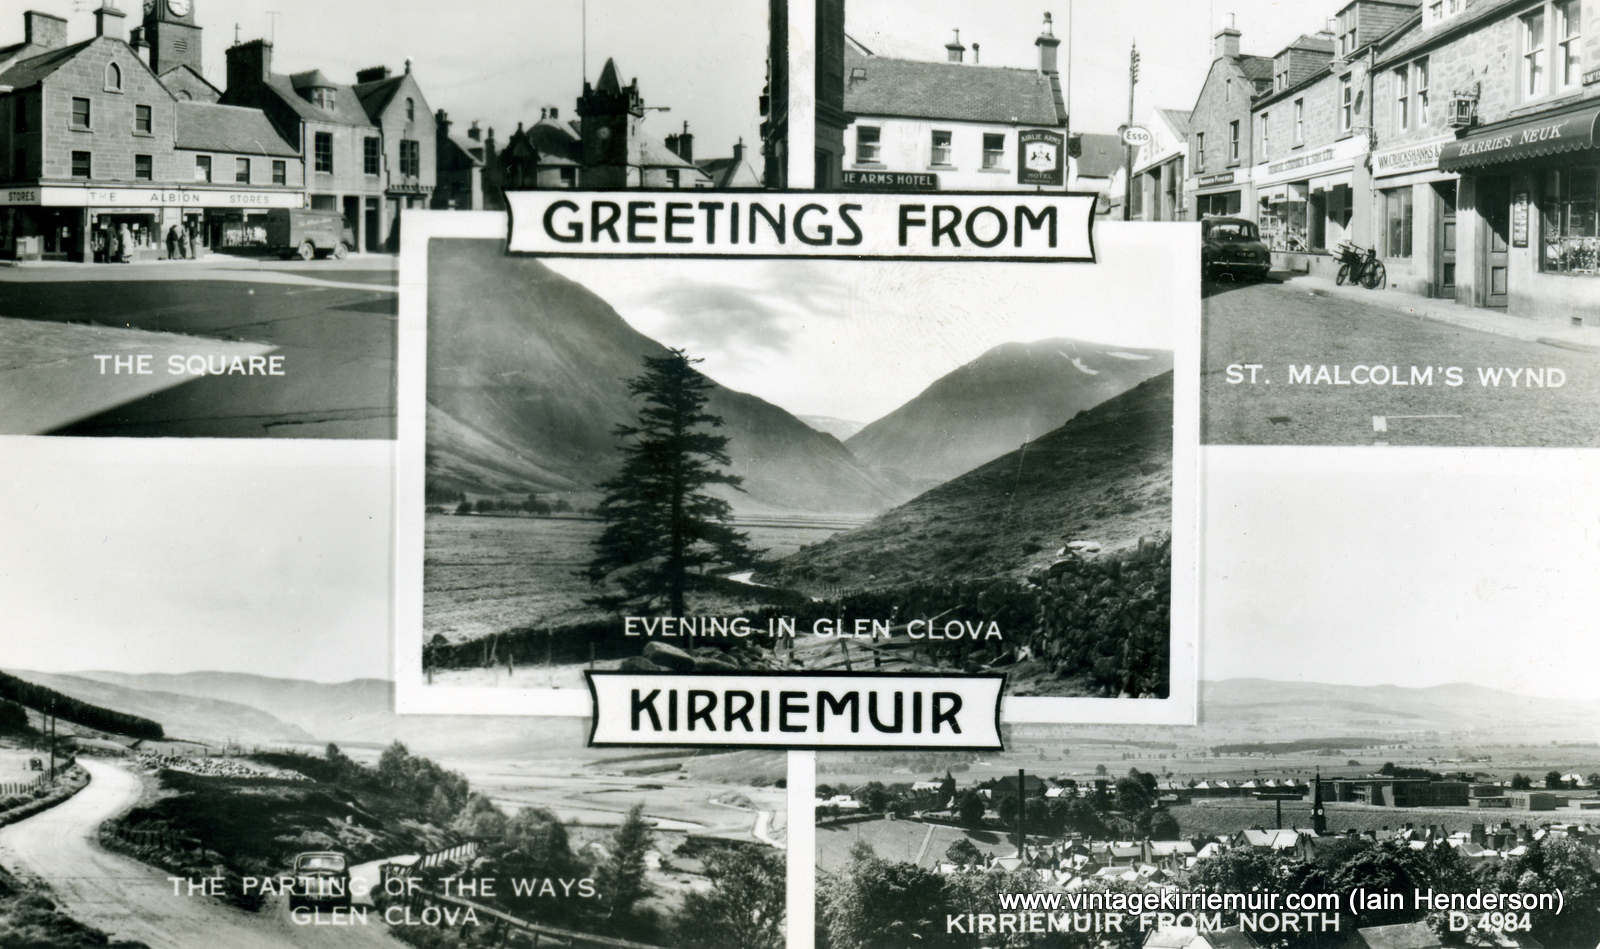 Greetings from Kirriemuir (1960)